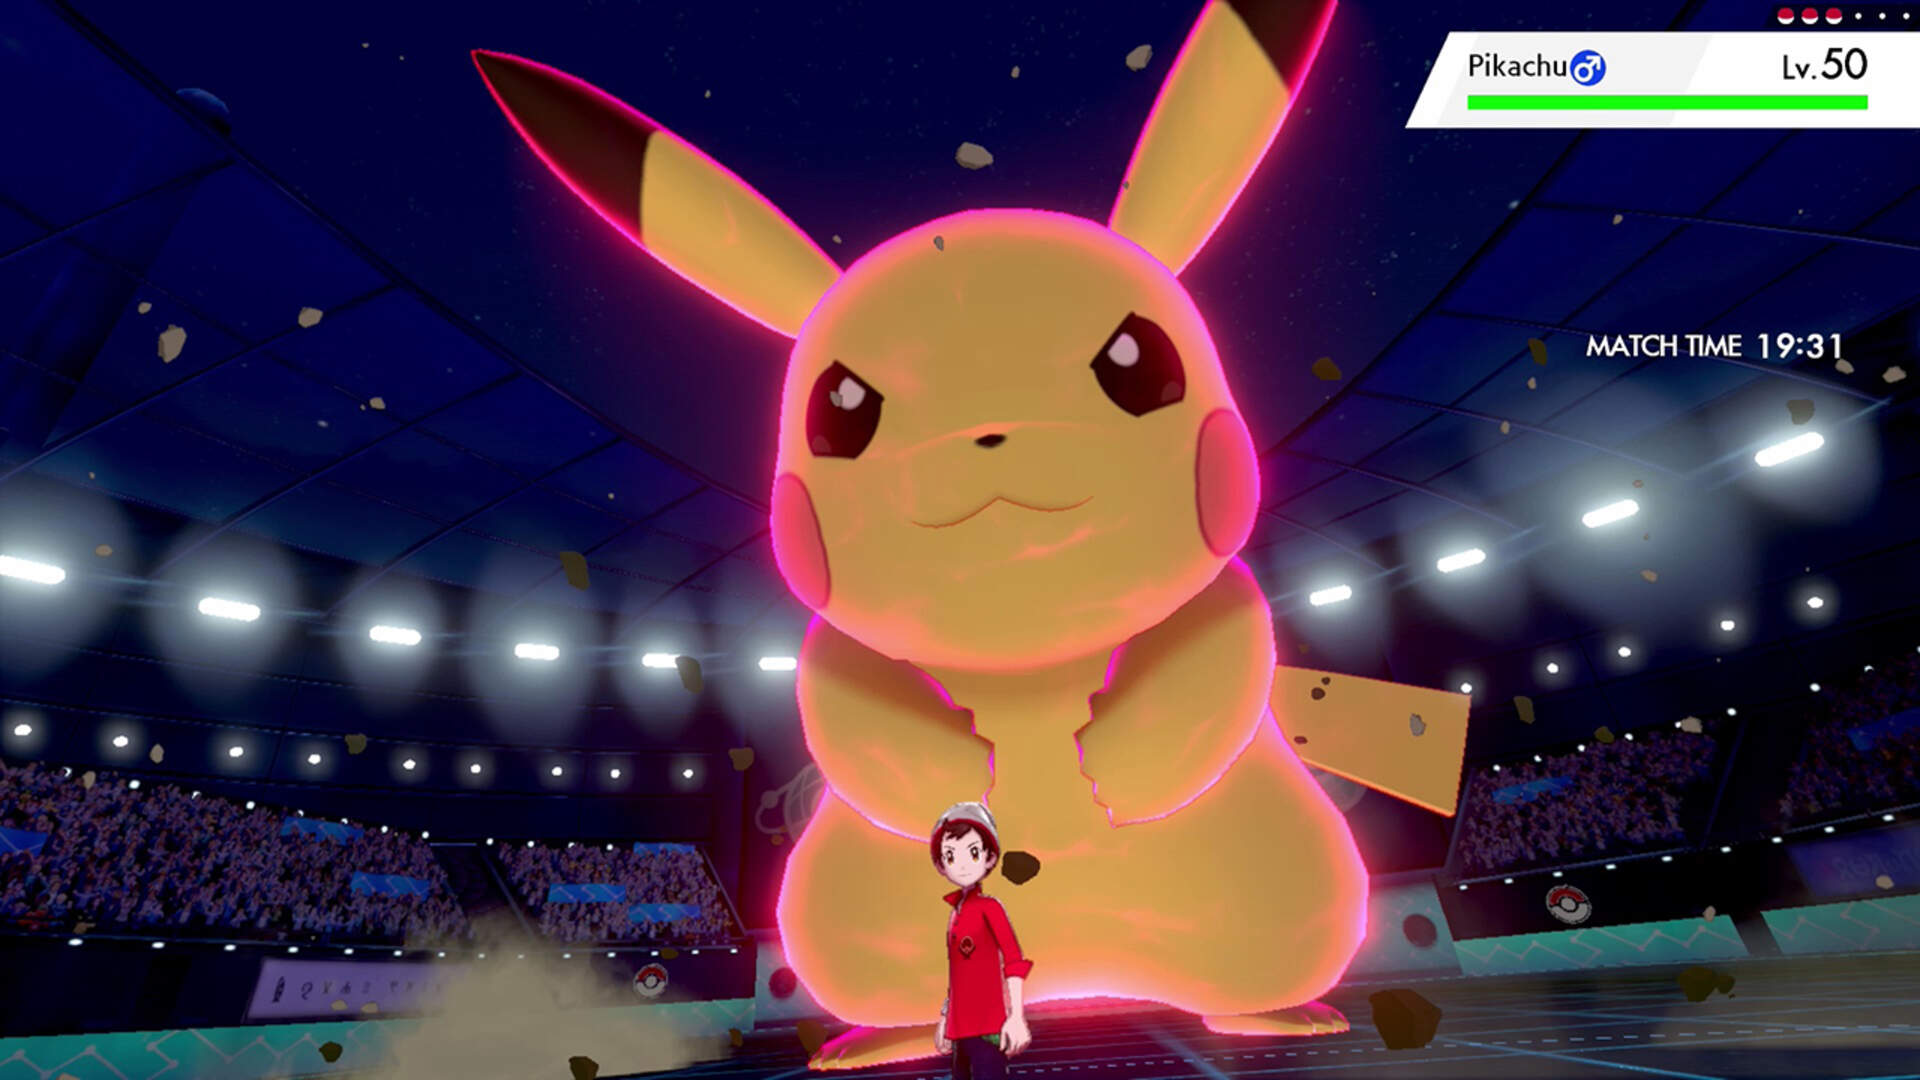 A Reminder for Fans Raging About Pokemon Sword and Shield: Every New Entry is Somebody's First